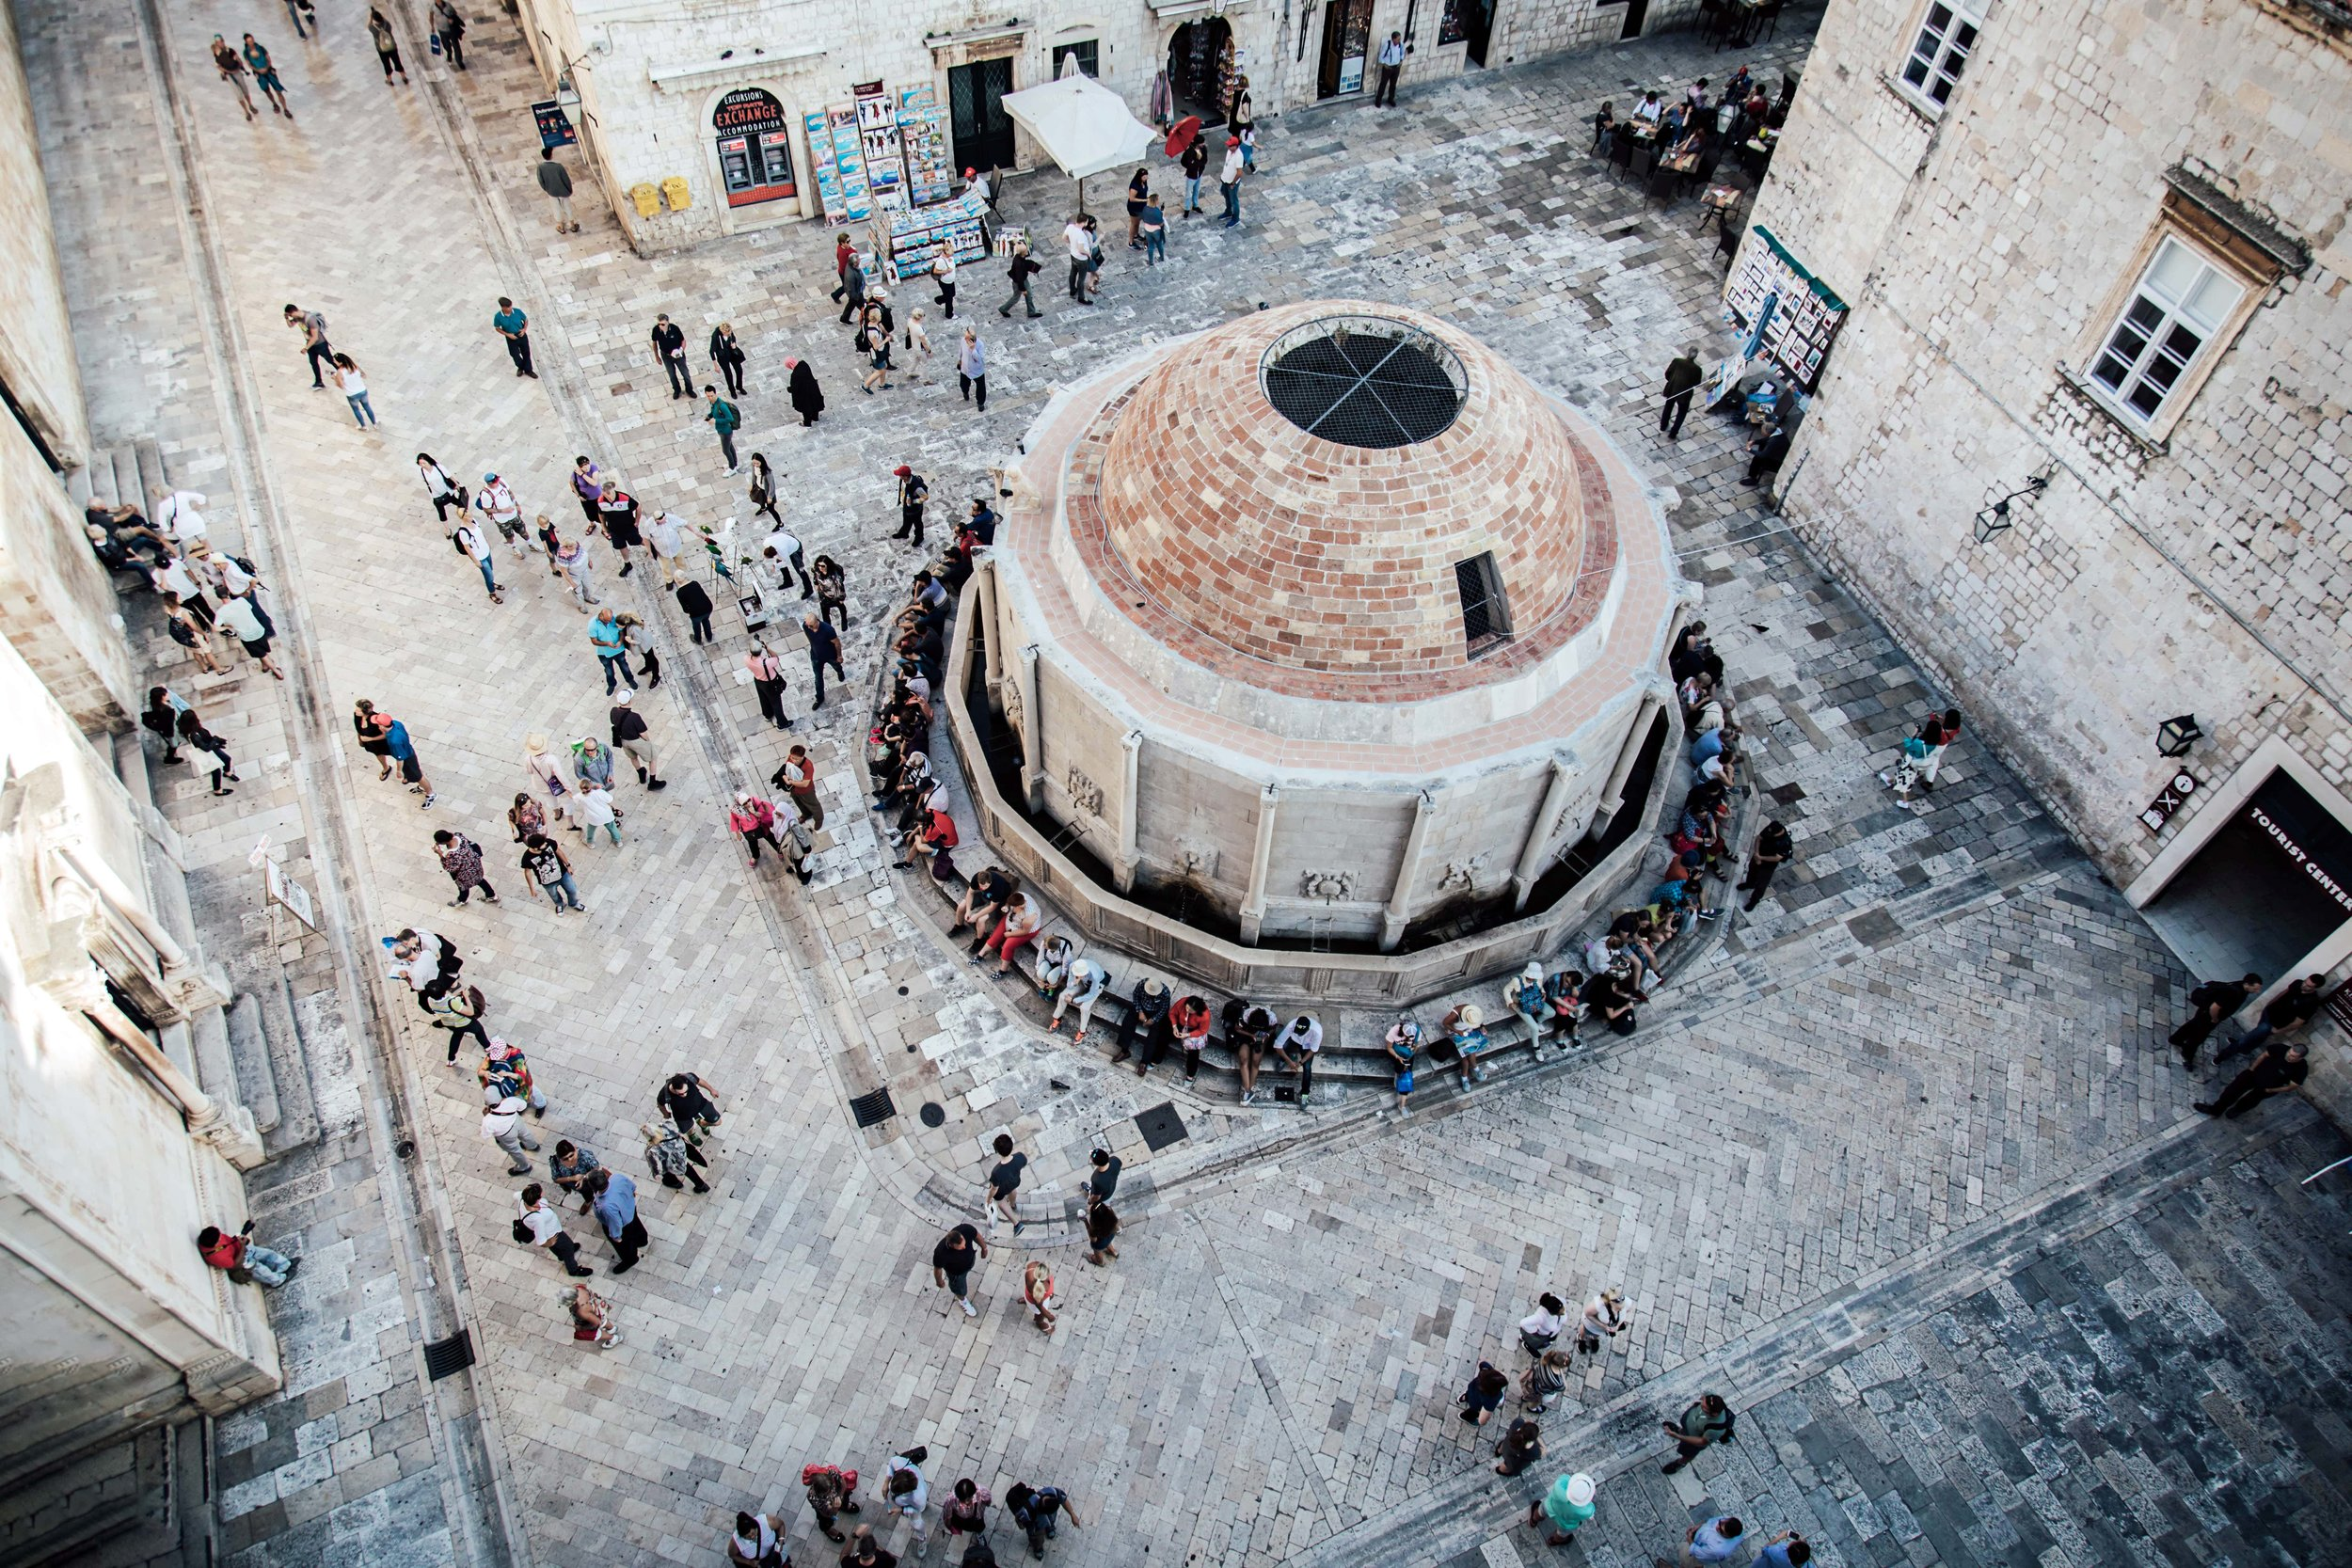 Travel_Photography_1_Dubrovnik-Croatia (50)-min.jpg